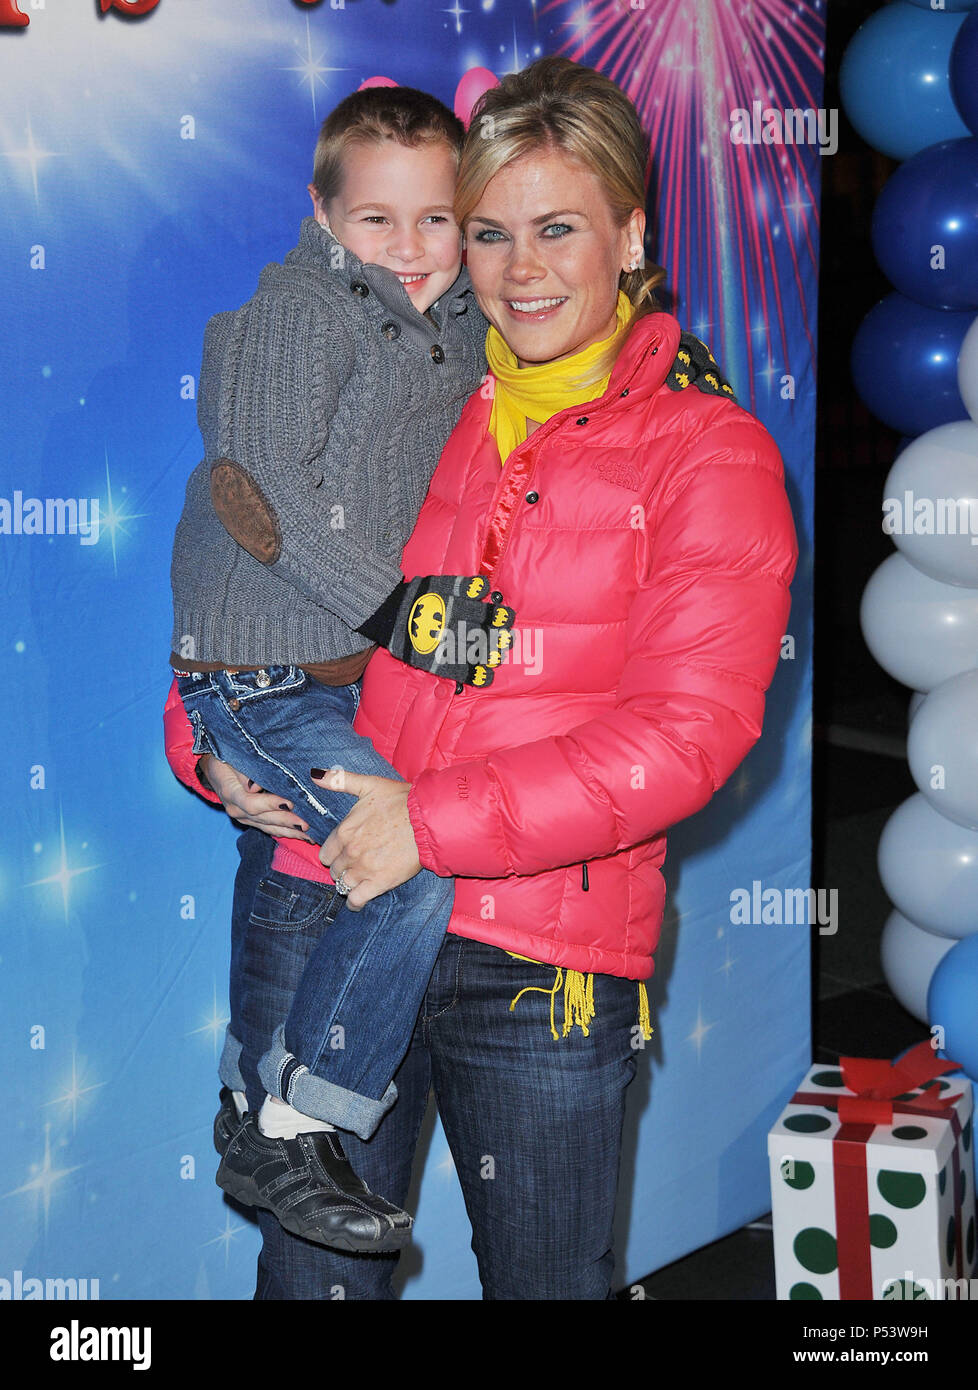 Alison Sweeney Family Pictures alison sweeney, son - let s celebrate disney on ice at the